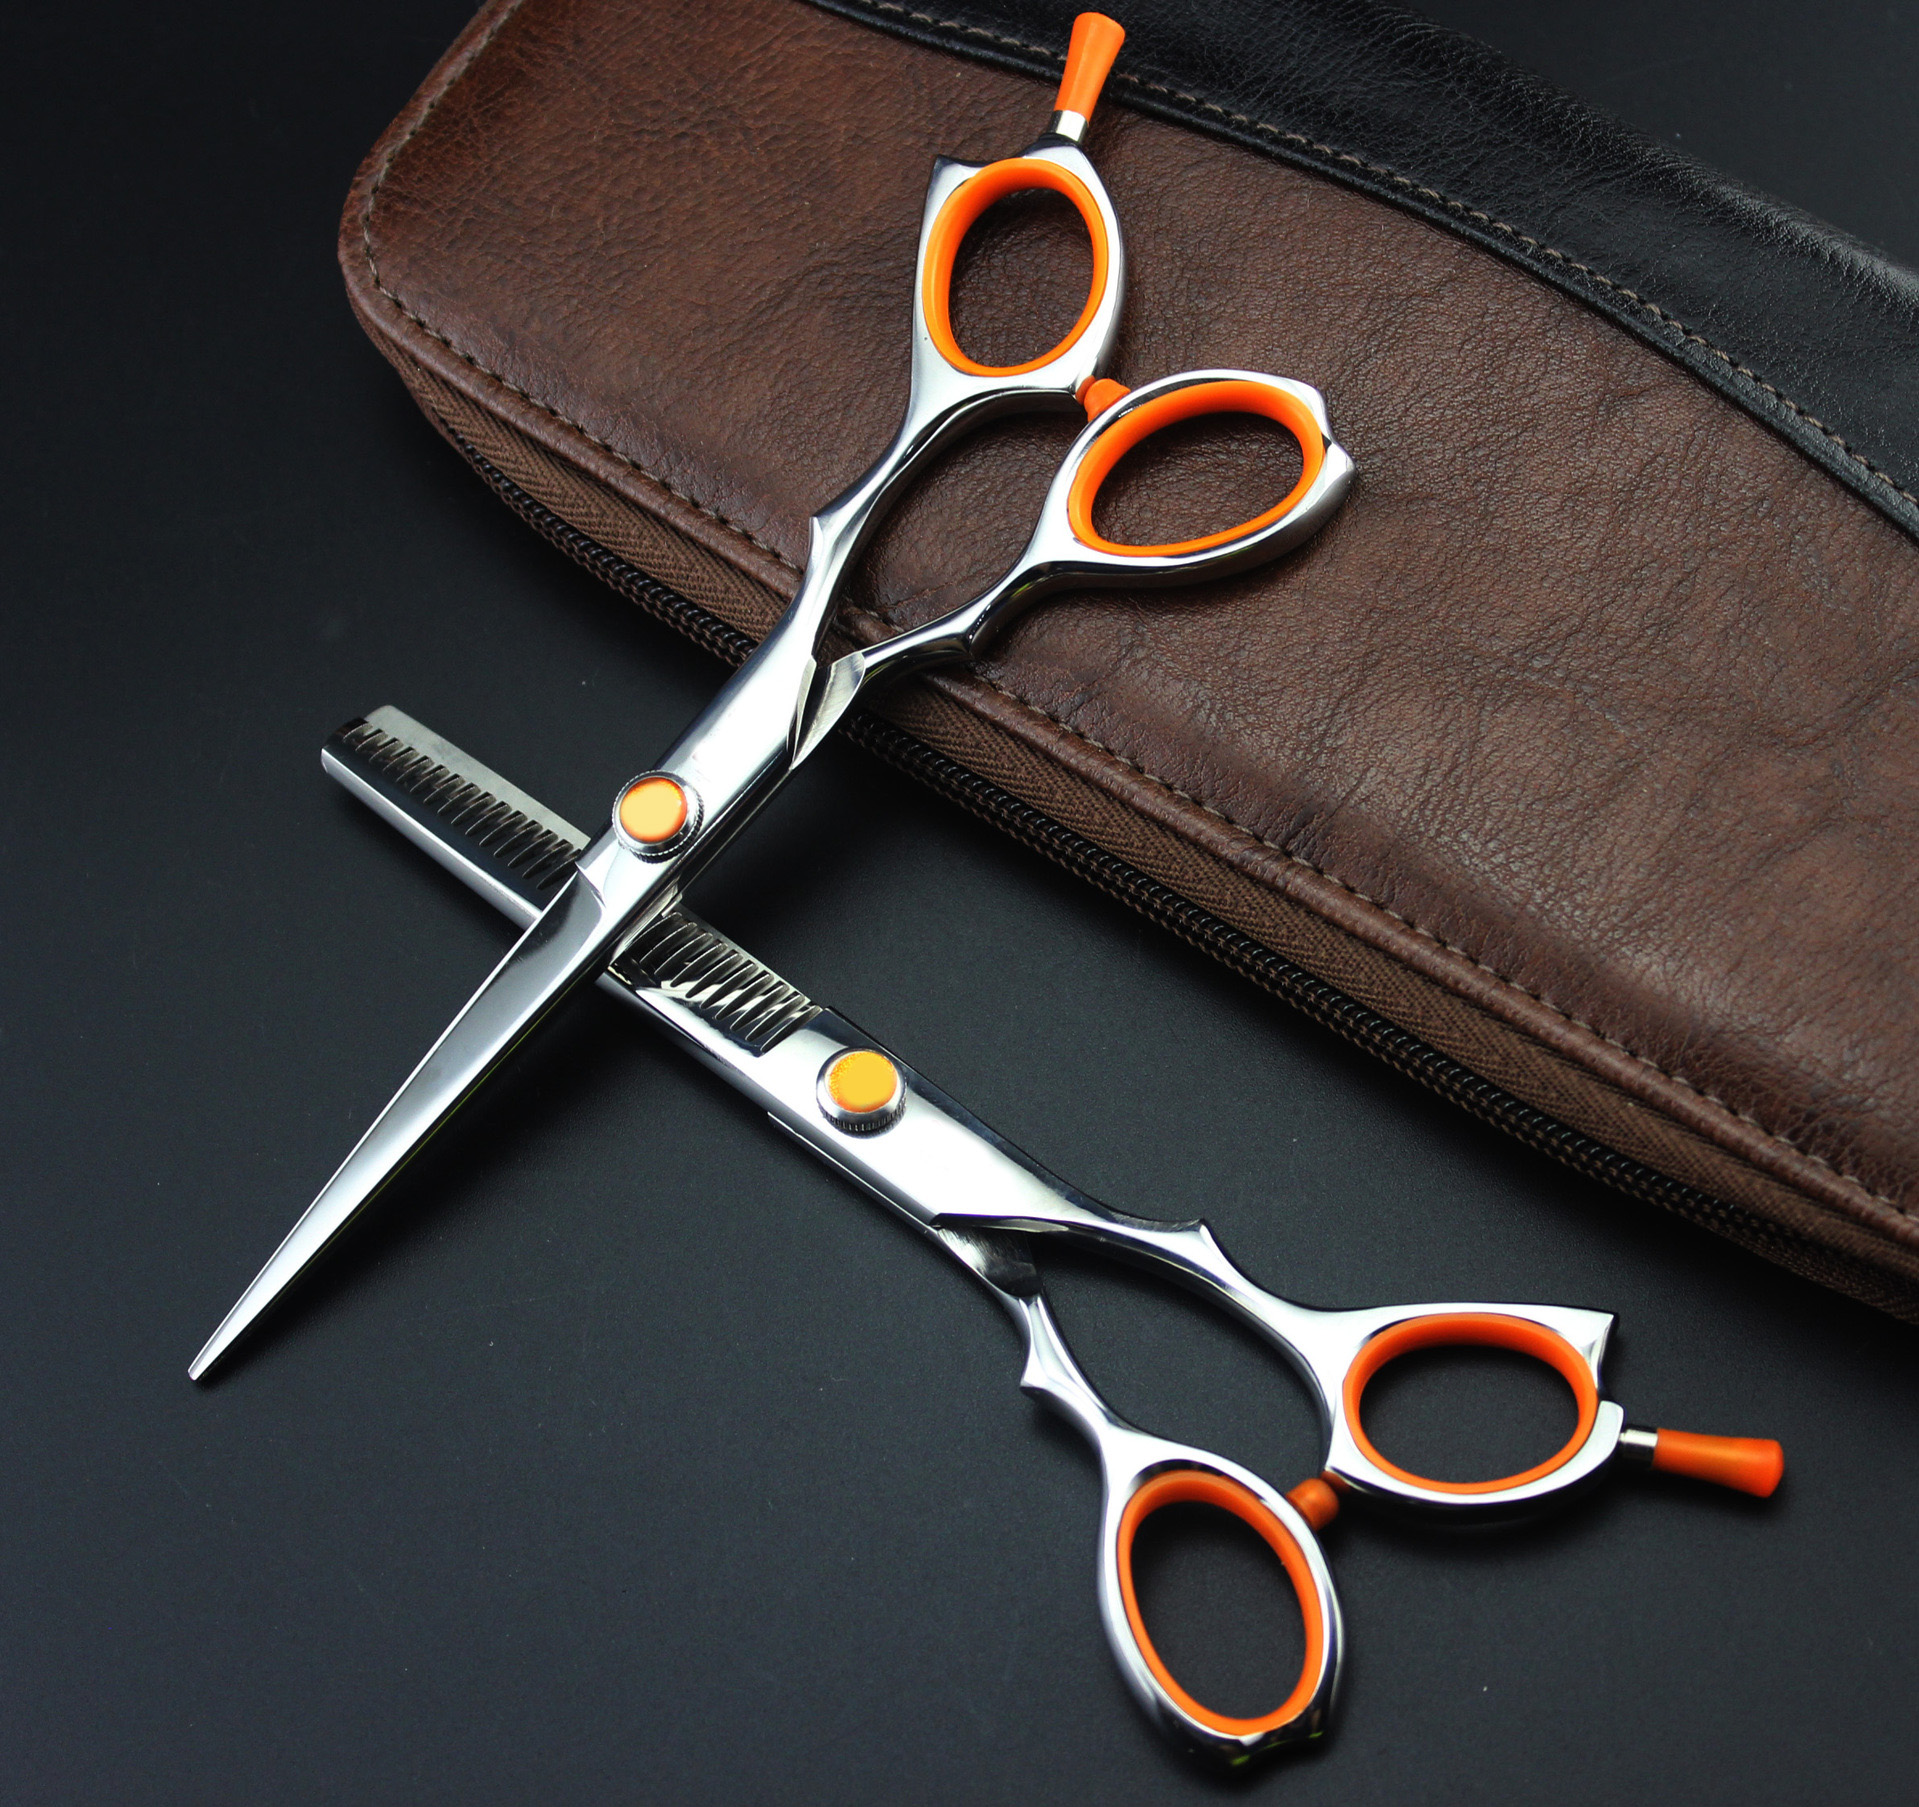 6INCH barnd Hairdressing Scissors Hair Cutting and Thinning Scissors Barber Shears sharp quality scissors barber tools